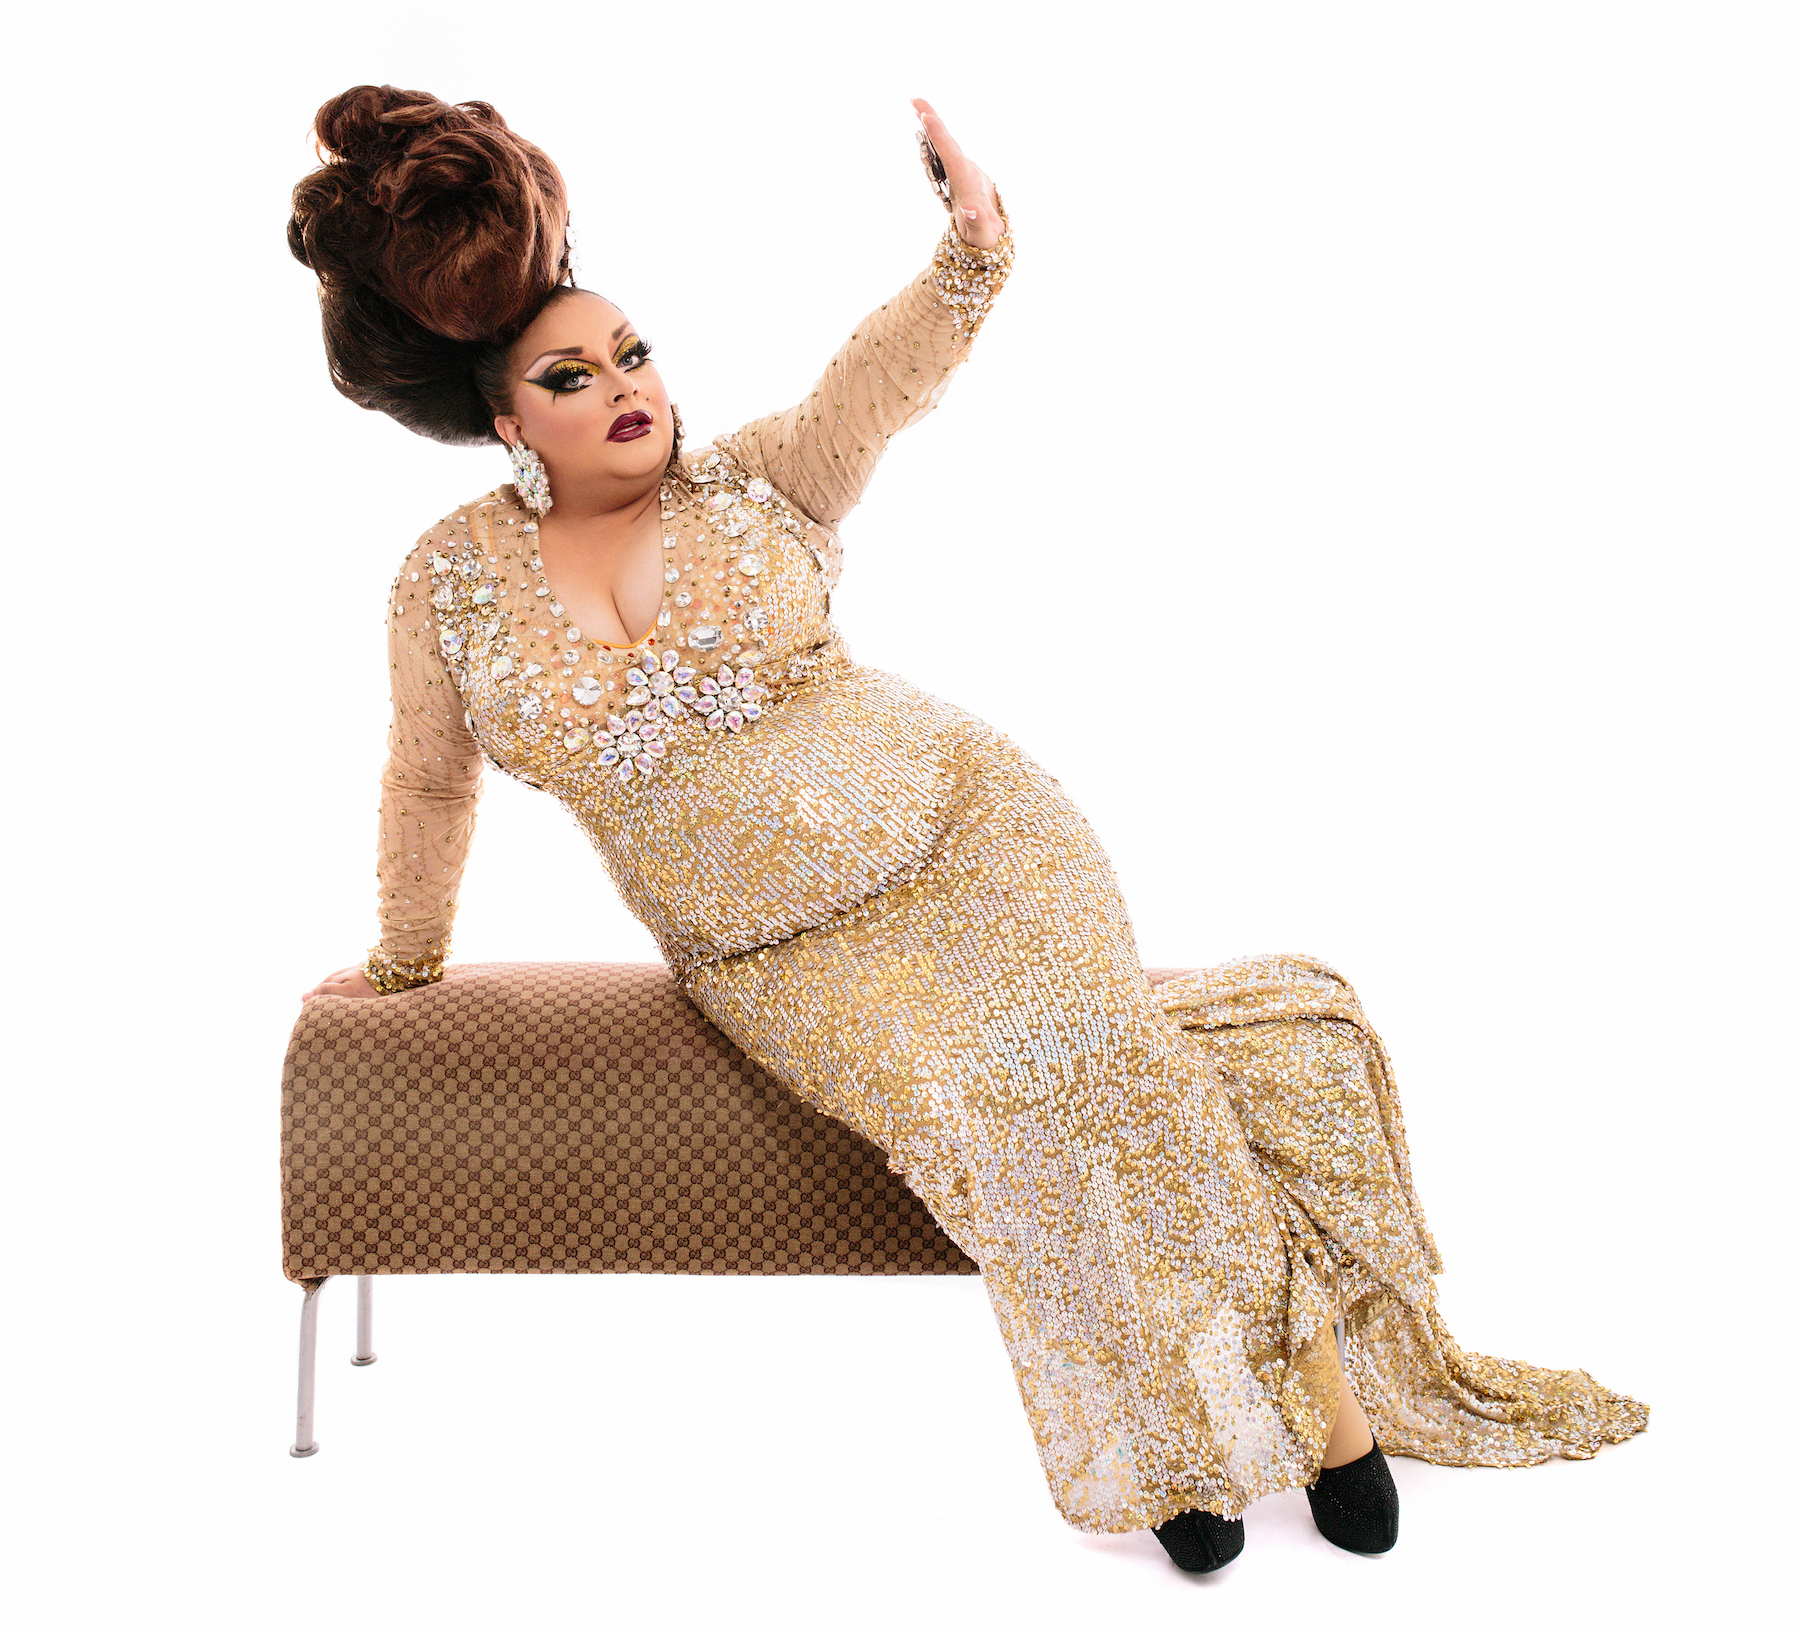 Ginger Minj: Mary, Did You Know